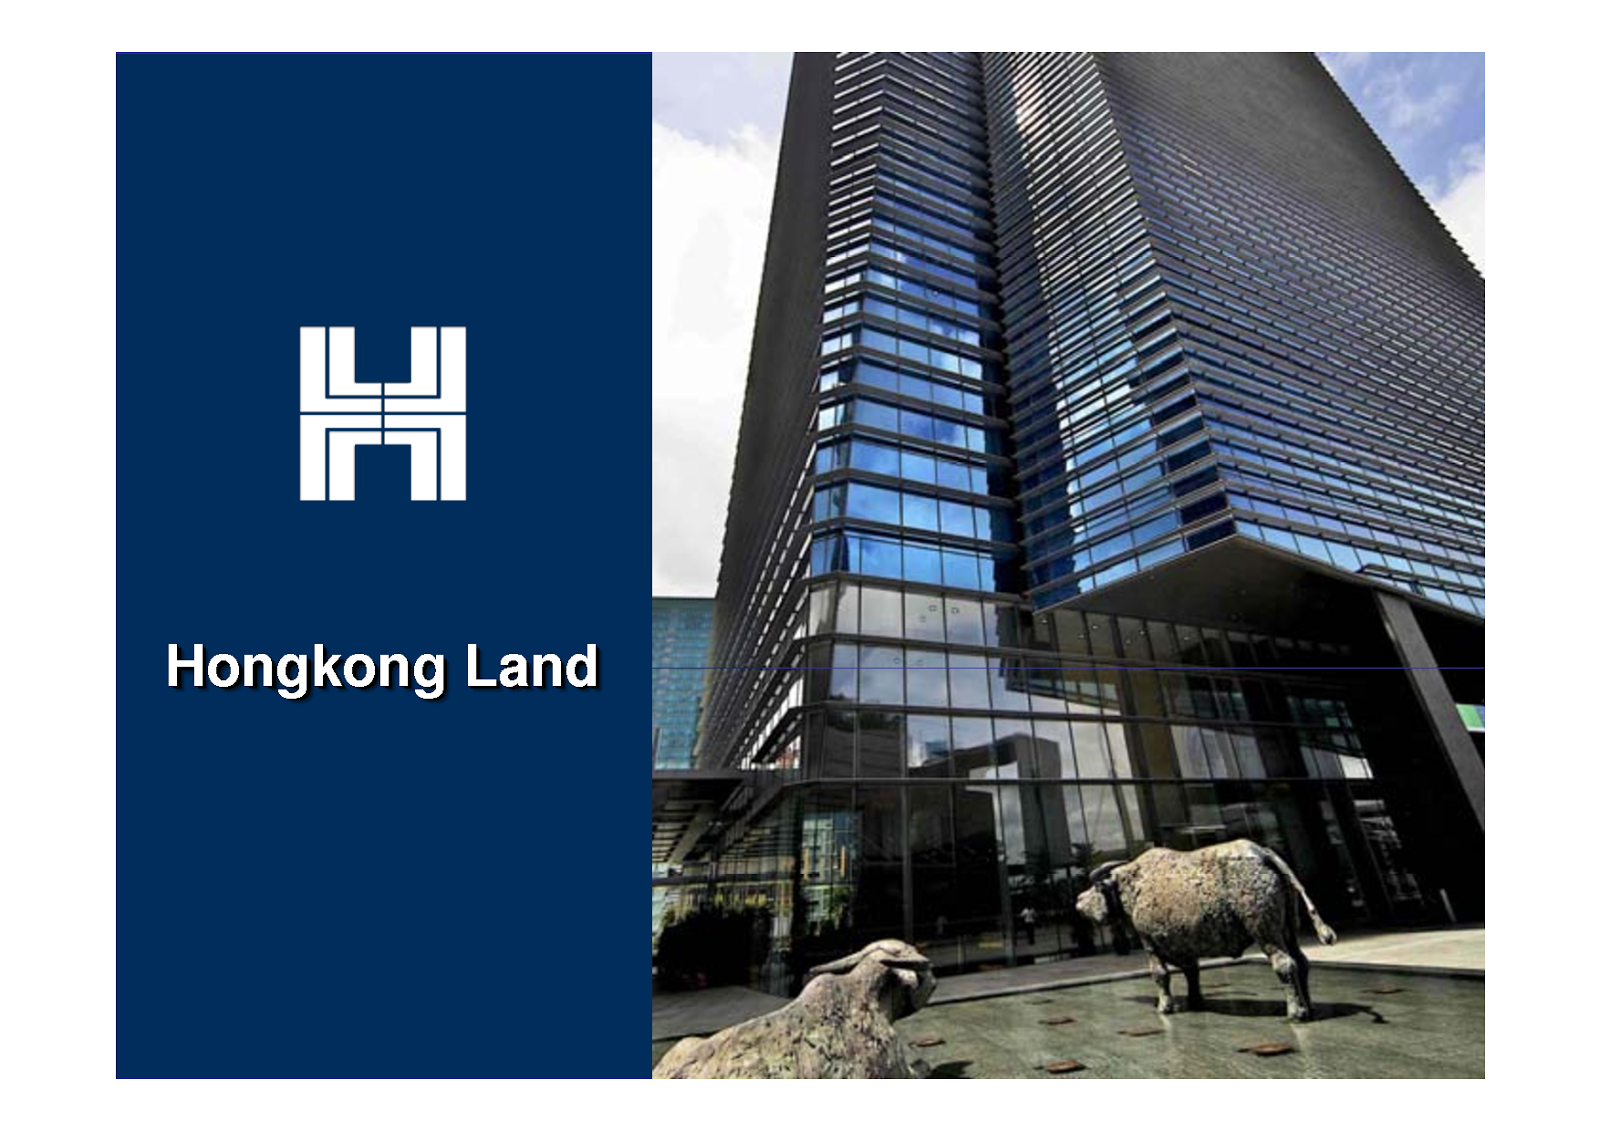 Hongkong Land - Riding on the strength of the Central